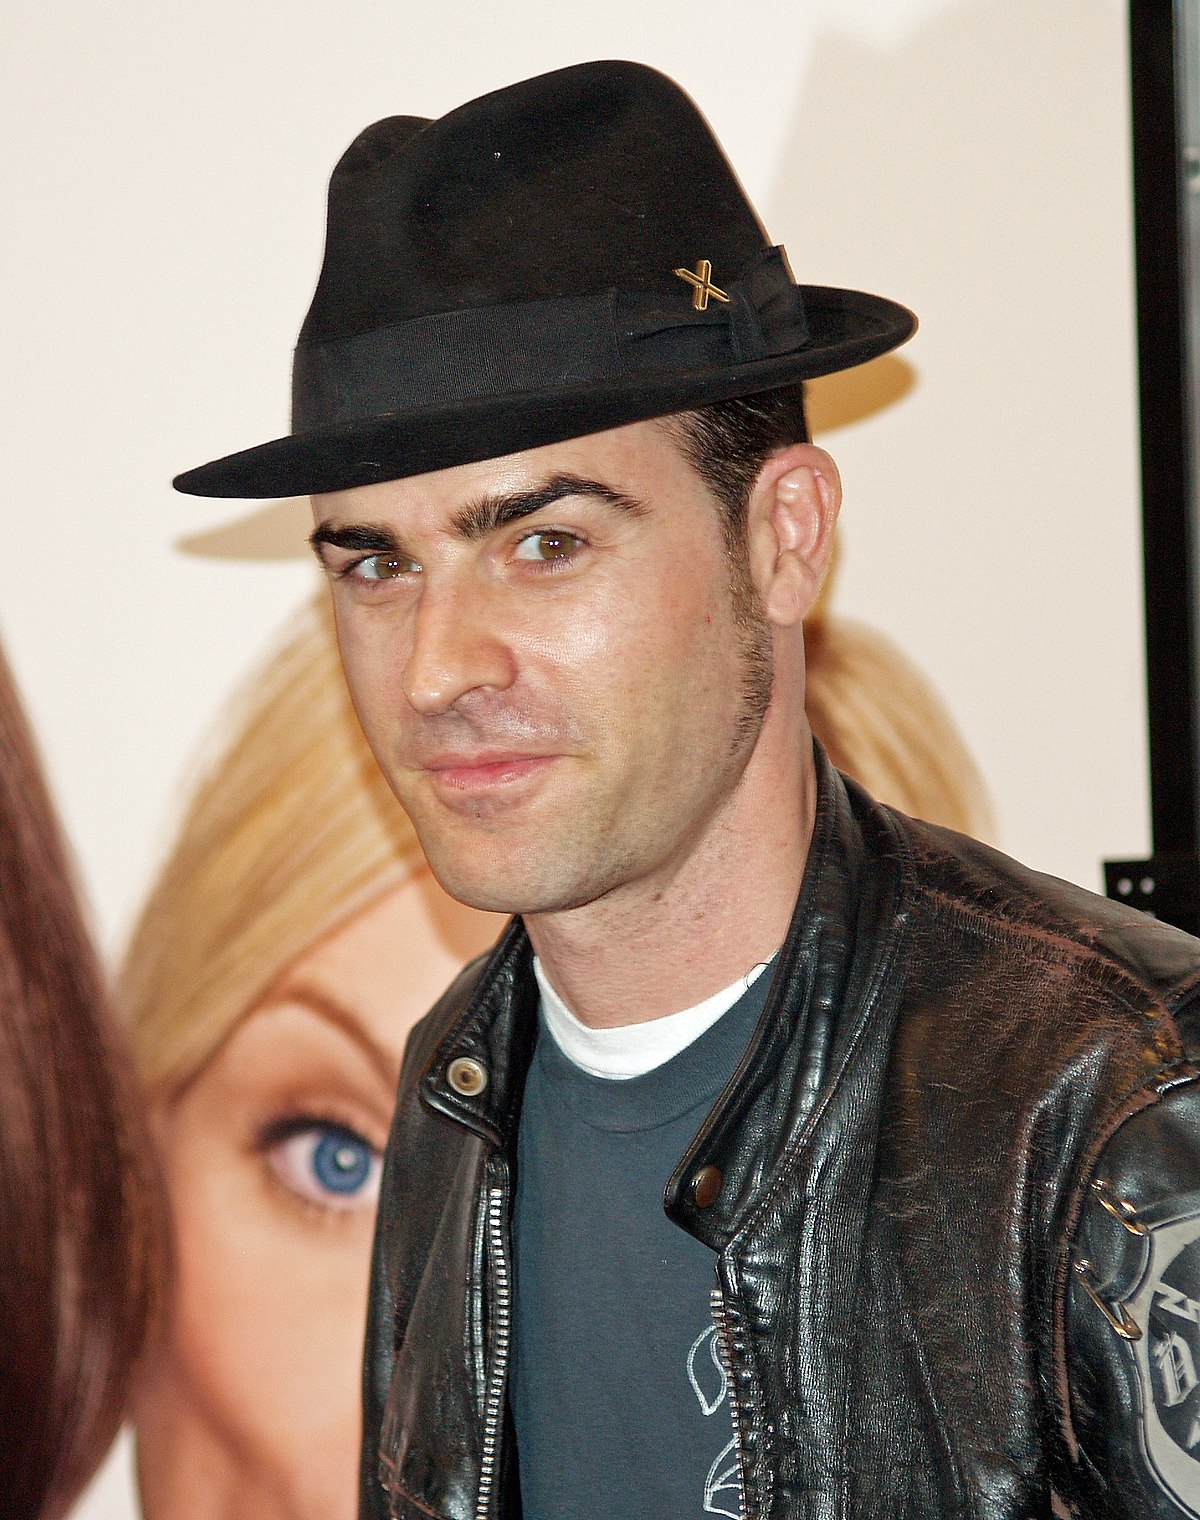 Justin Theroux – Wikipedia